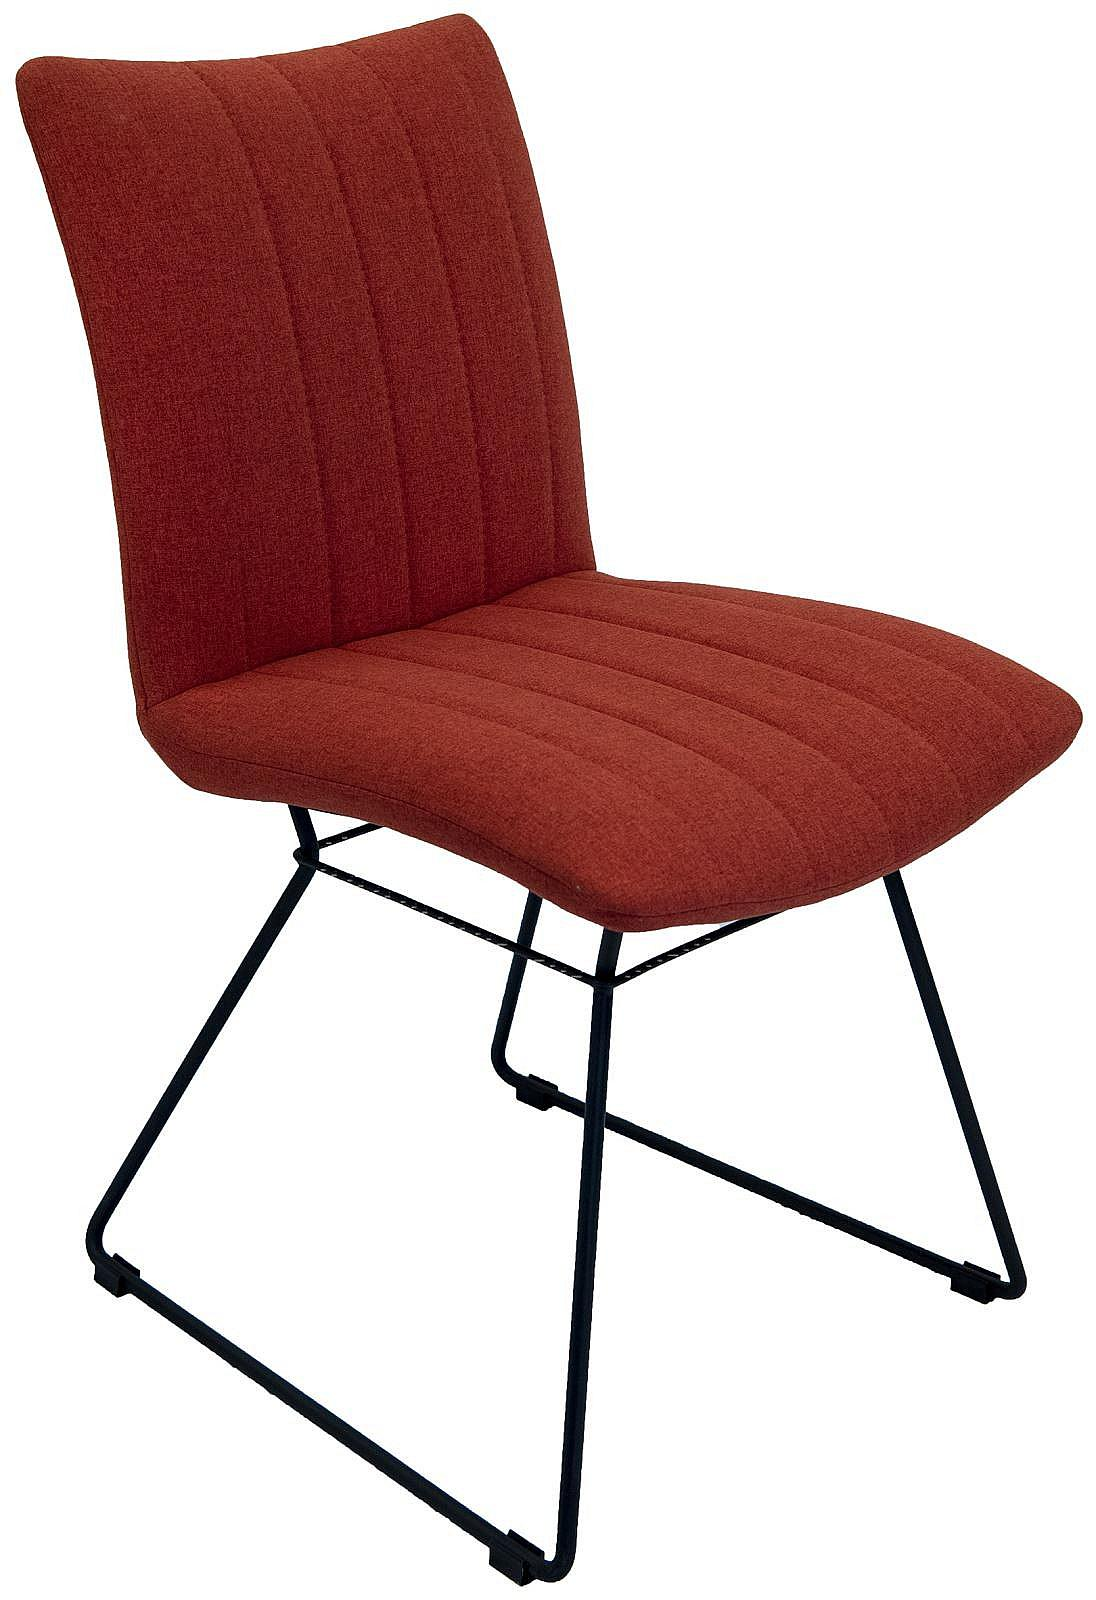 Picture of: Acadia Dining Chair Burnt Orange Vale Furnishers